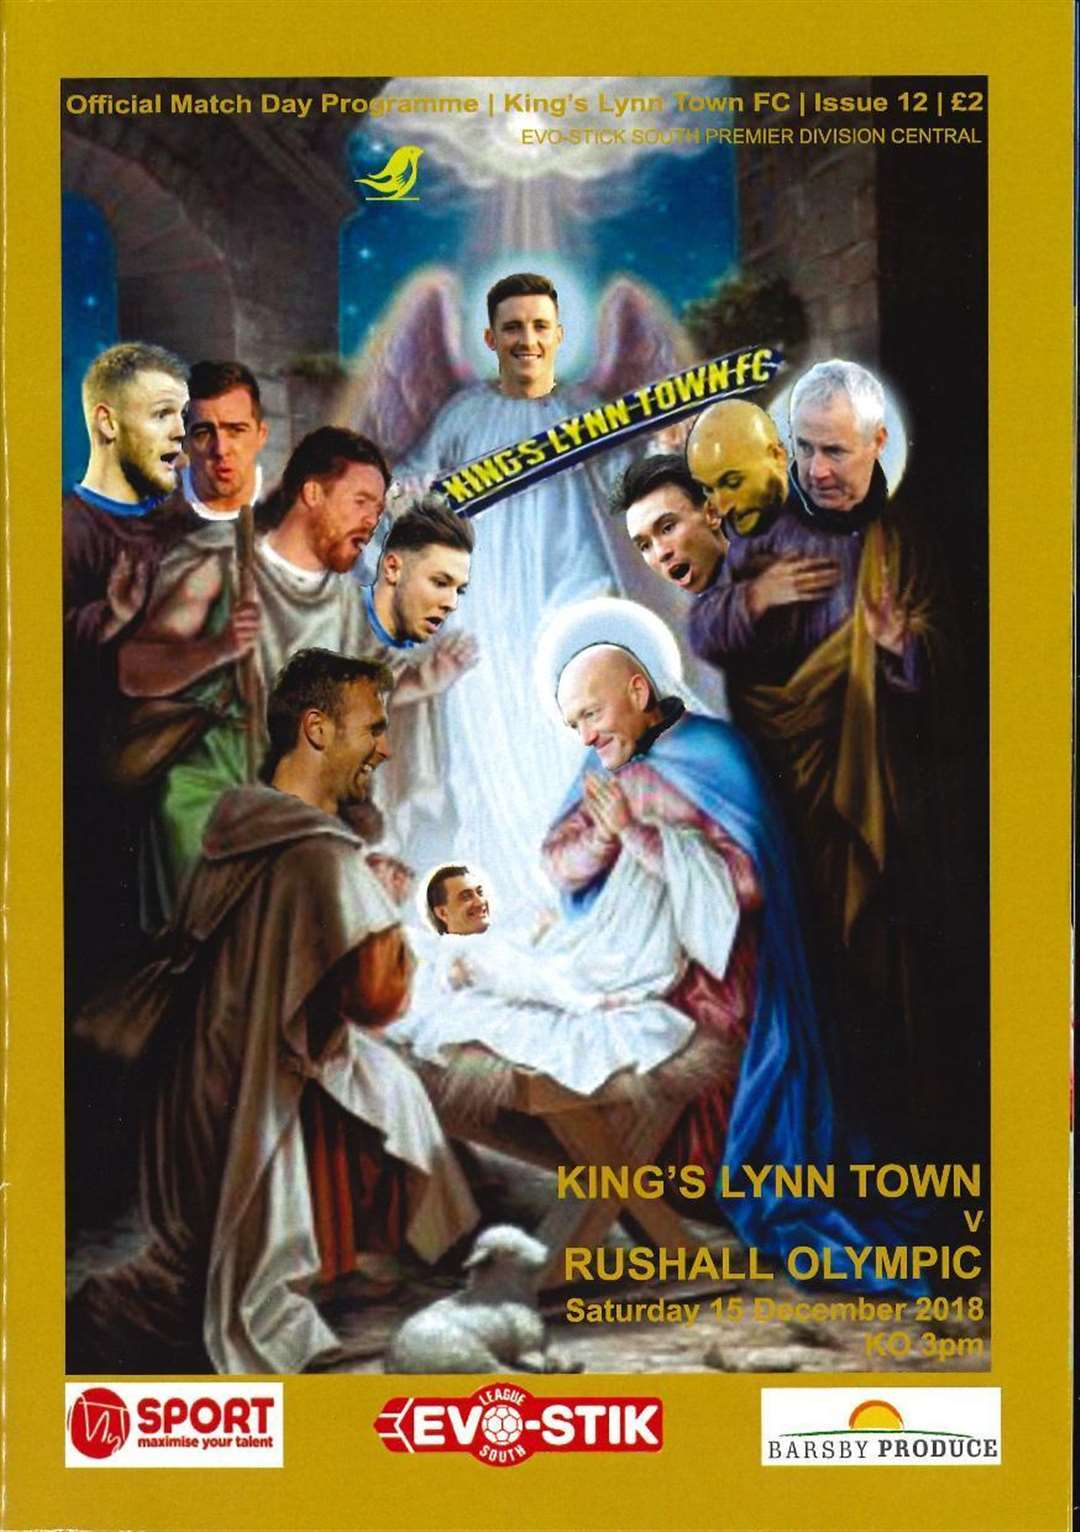 The programme cover depicting King's Lynn Town players and officials as characters in the Christmas story (6211440)